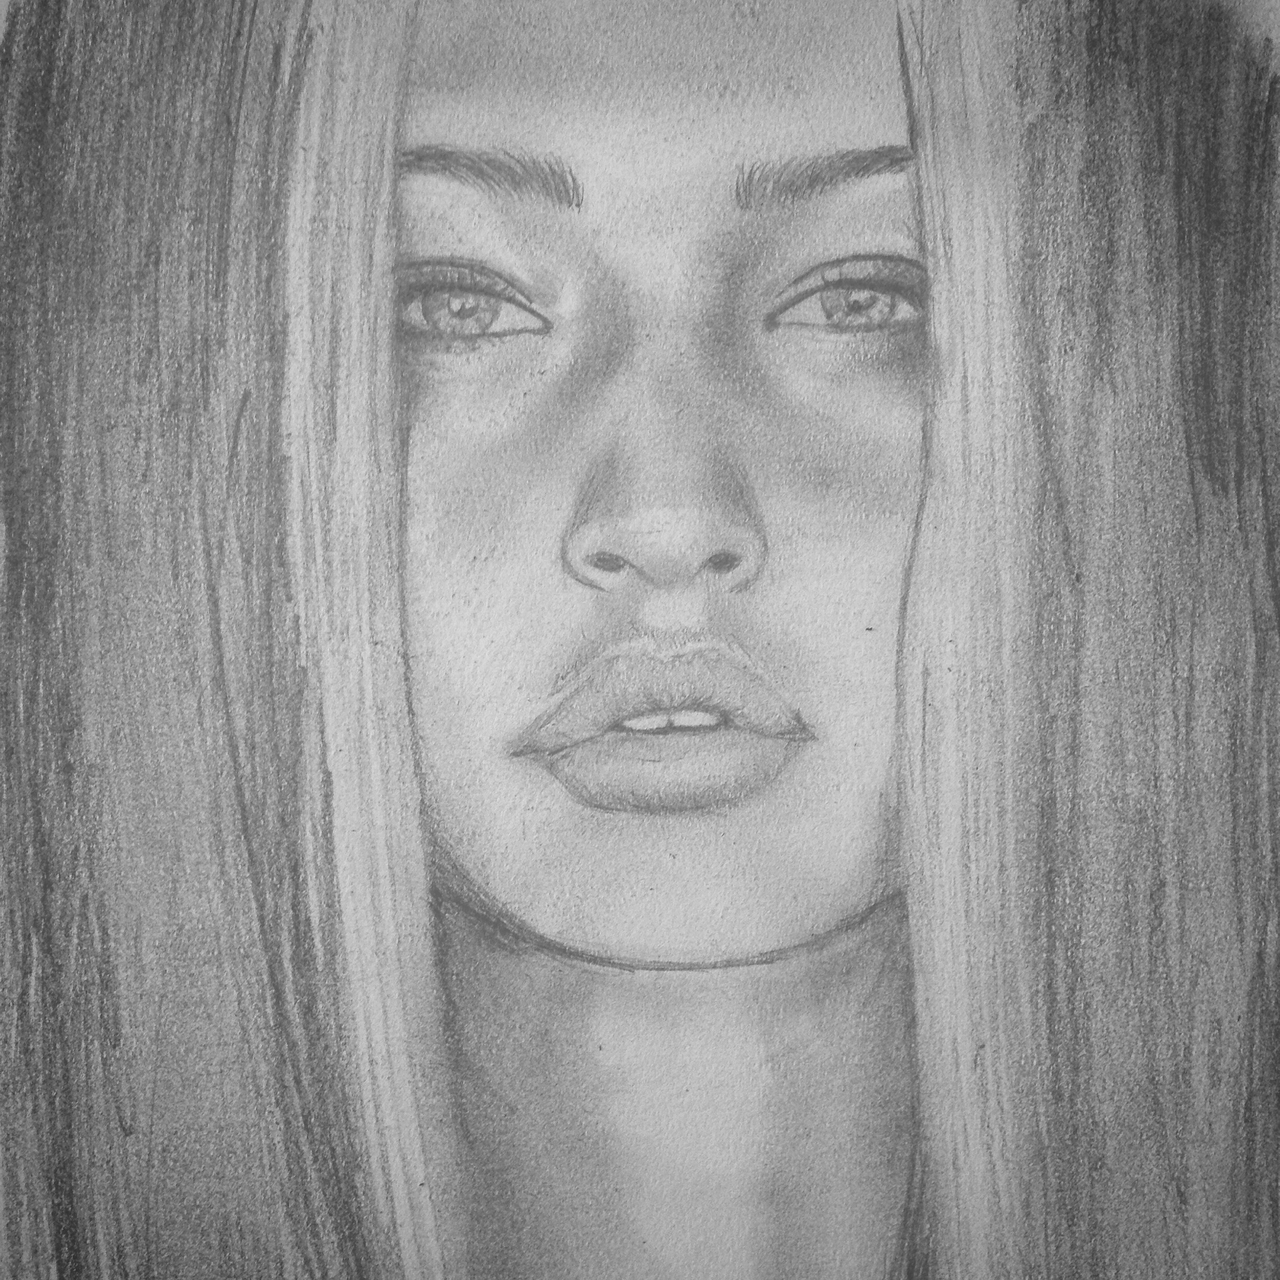 art, black and white, drawing and drawings